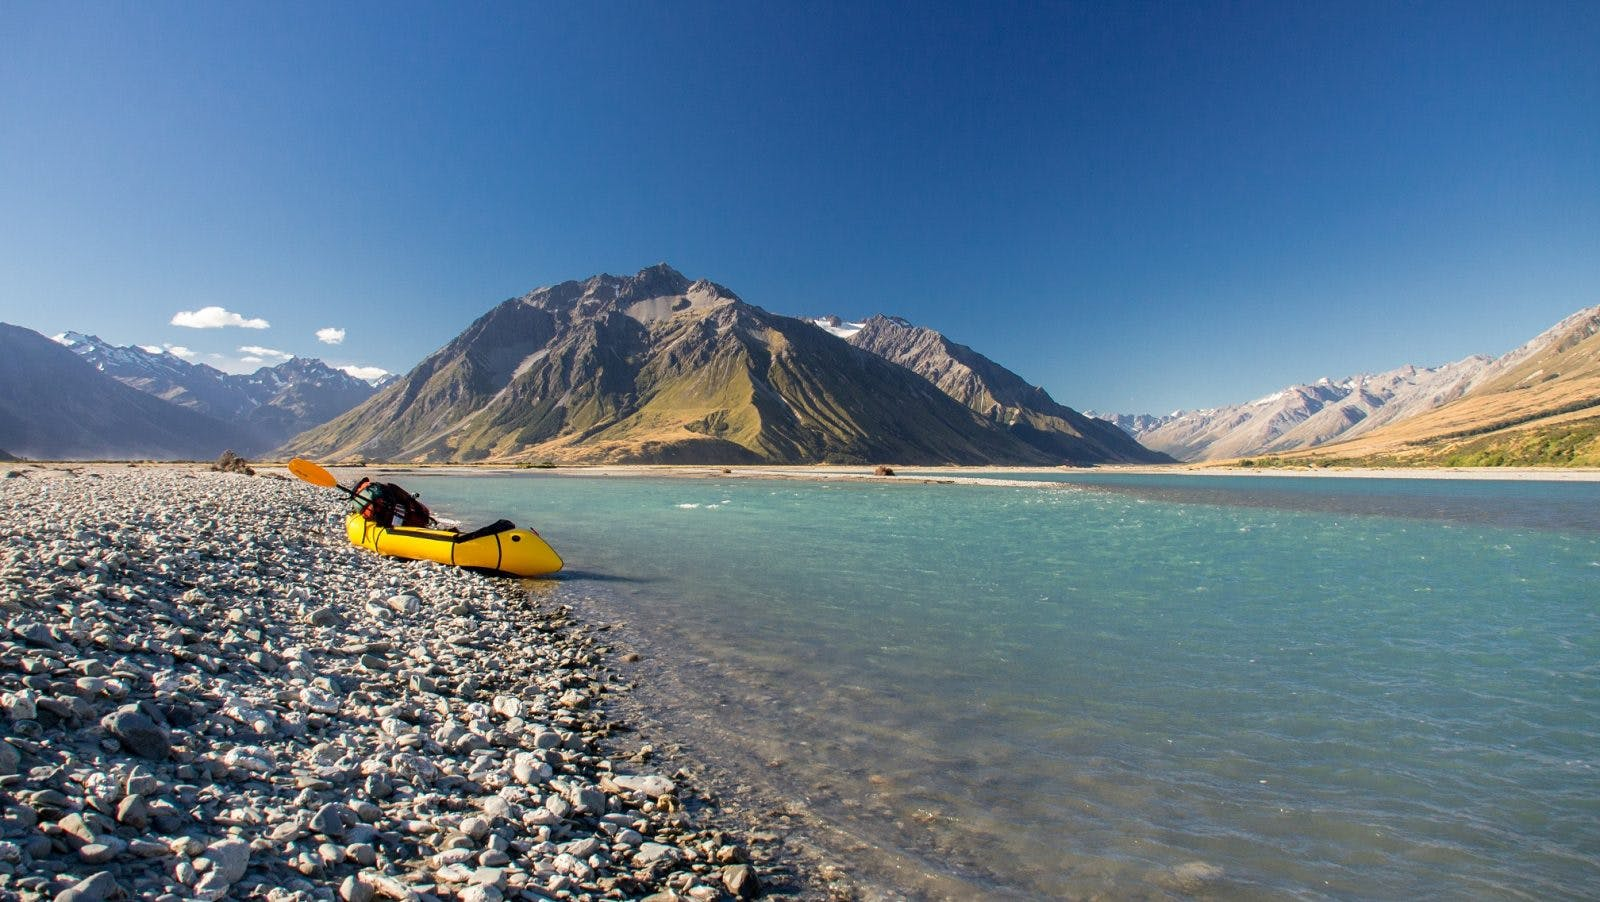 Taking out near the Dobson-Harper river confluence after a perfect day crossing the mountains from Lake Pukaki and paddling down the Dobson; NZ South Island Traverse